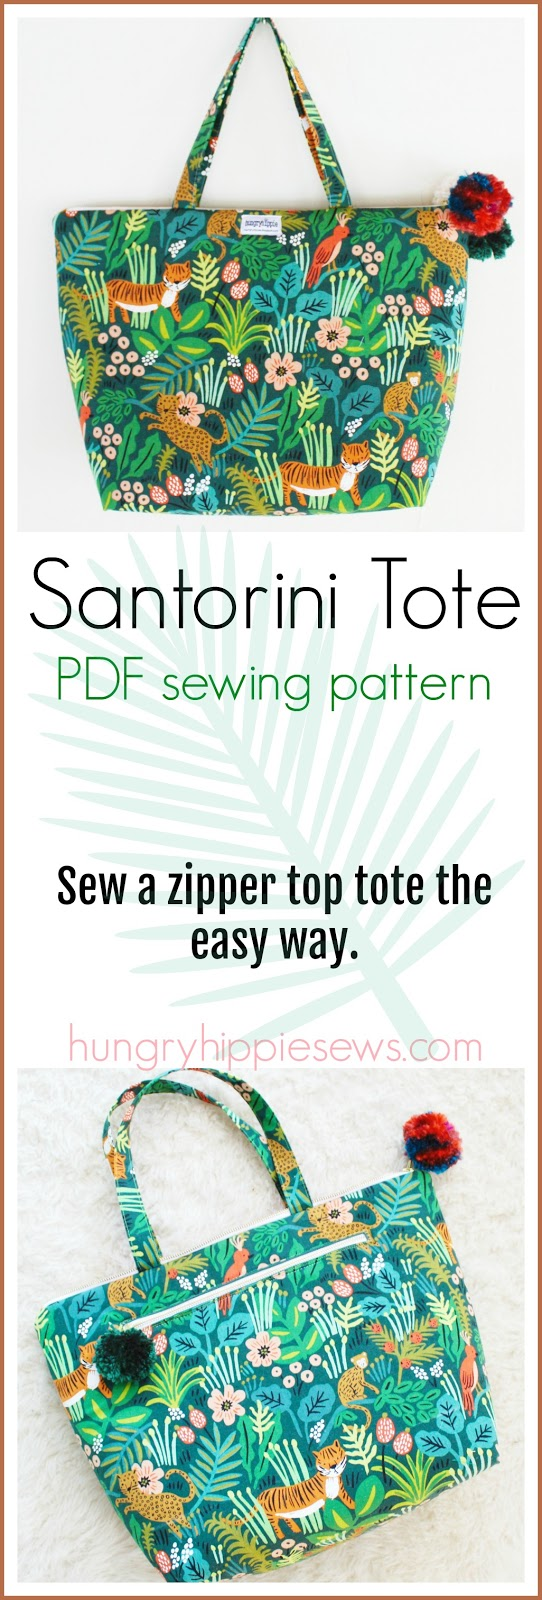 sewhungryhippie: Santorini Tote sewing pattern - easy to sew zipper ...